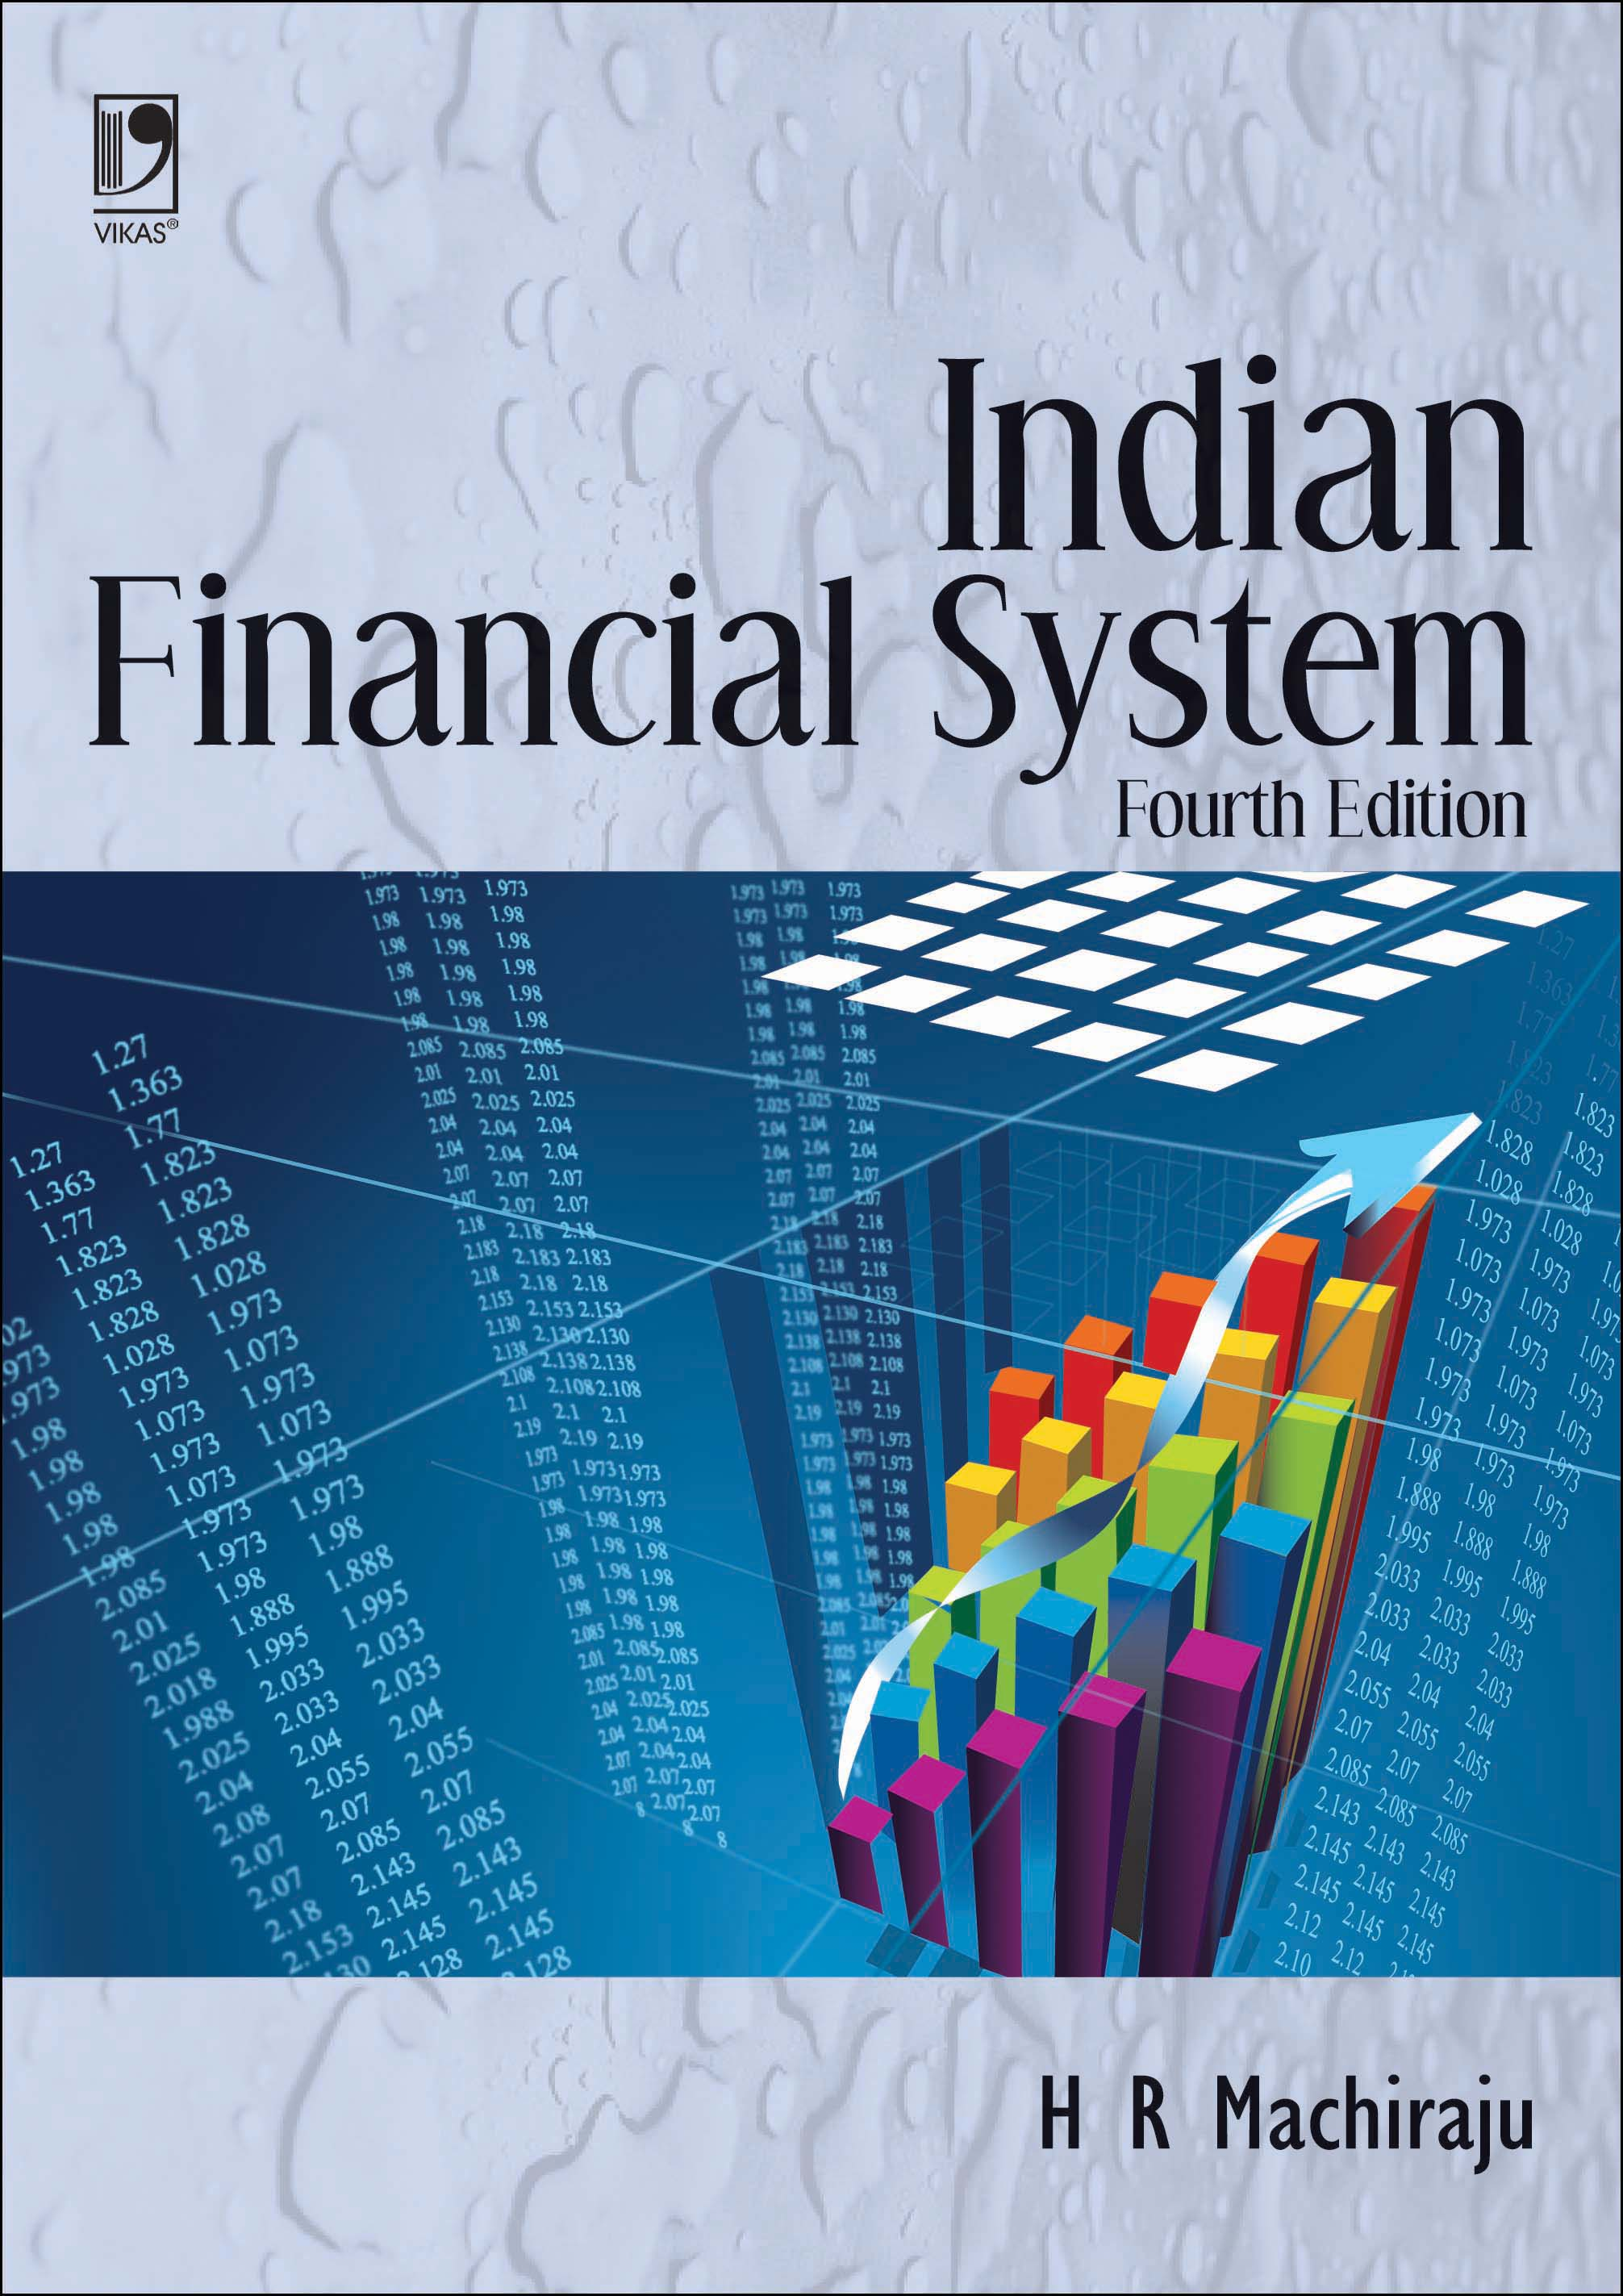 indian accounting system In accounting, a standard chart of accounts is a numbered list of the accounts that comprise a company's general ledger furthermore, the company chart of accounts is basically a filing system for categorizing all of a company's accounts & classifying all transactions they affect.